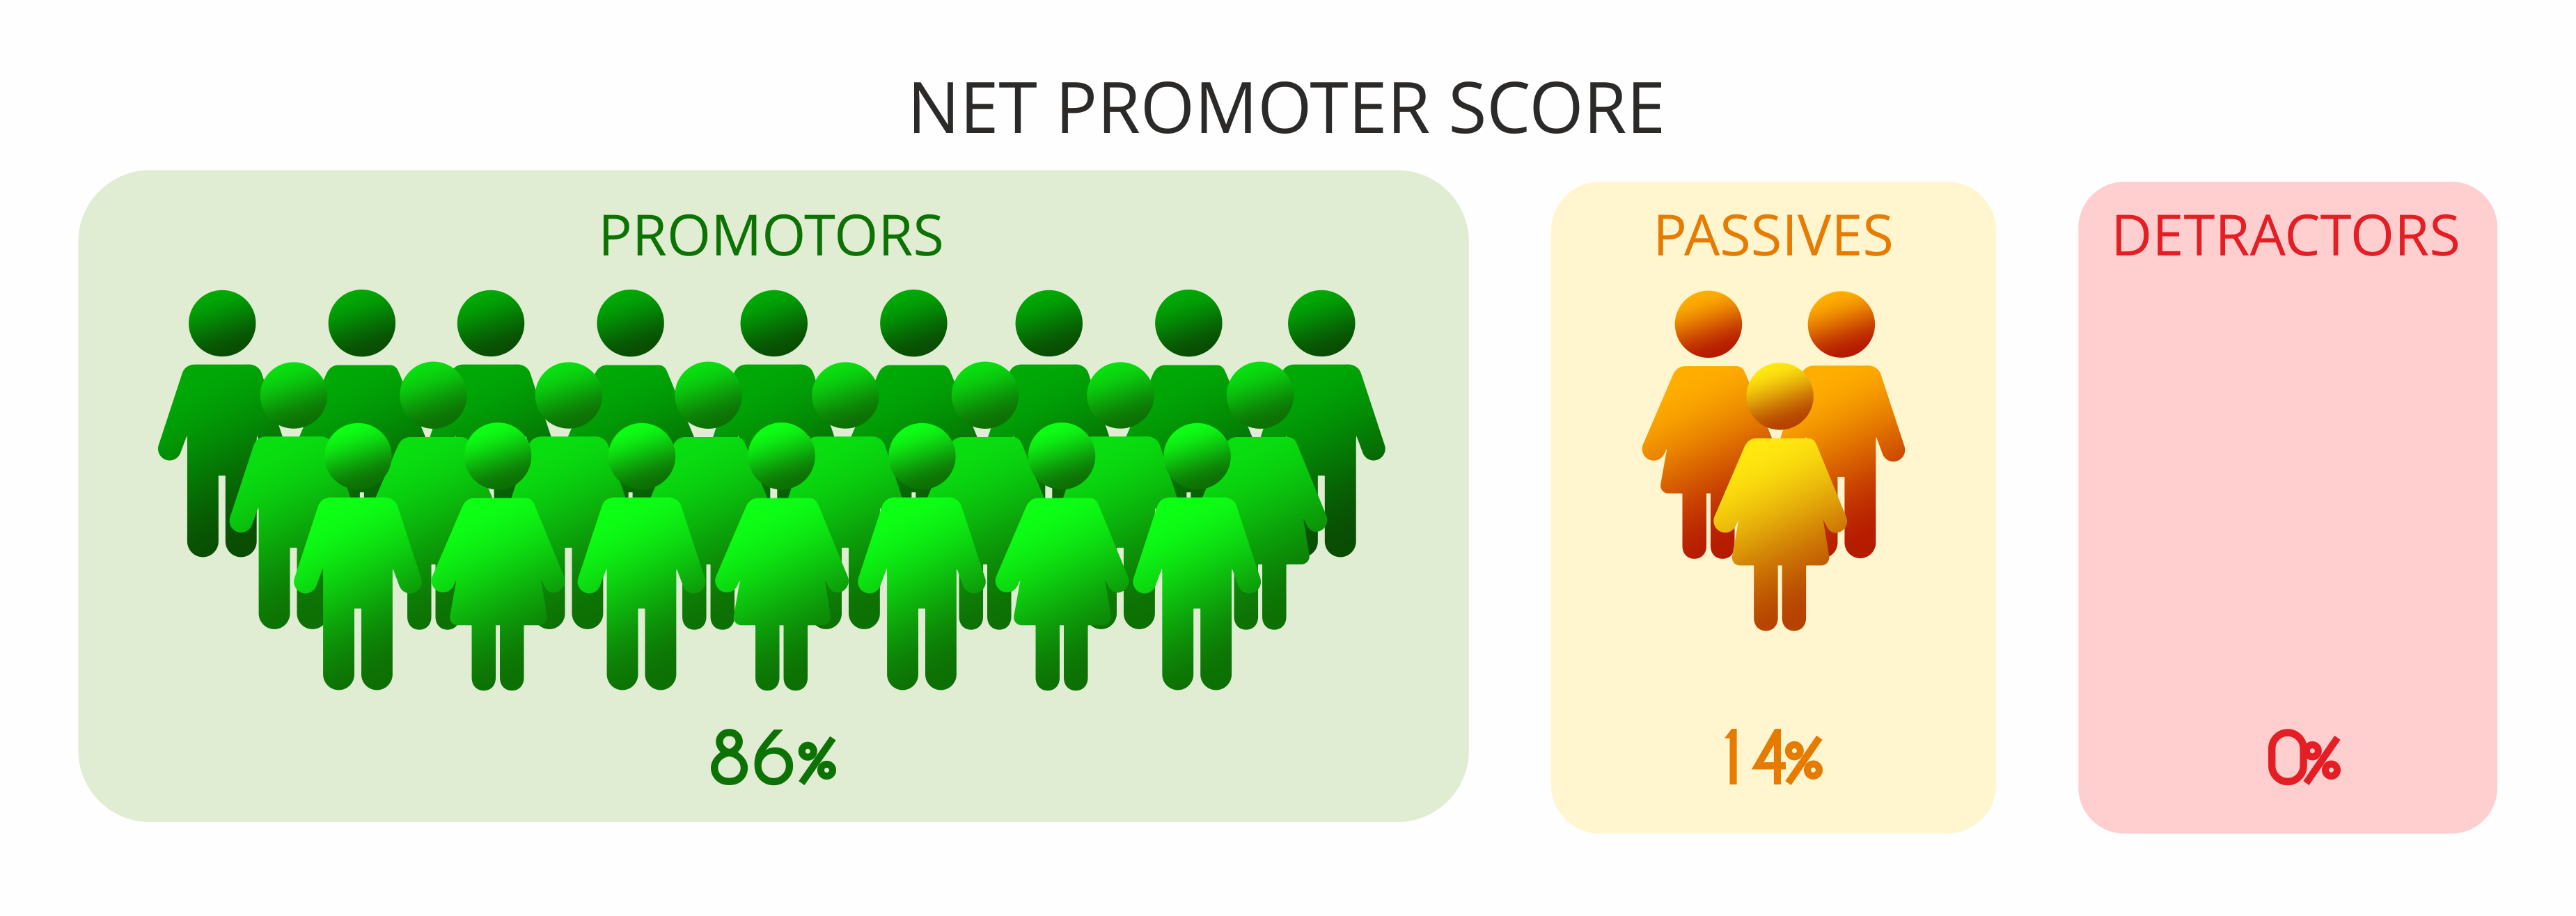 Net Promoter Score for Webcon BPS: 86. Much above the average for branch